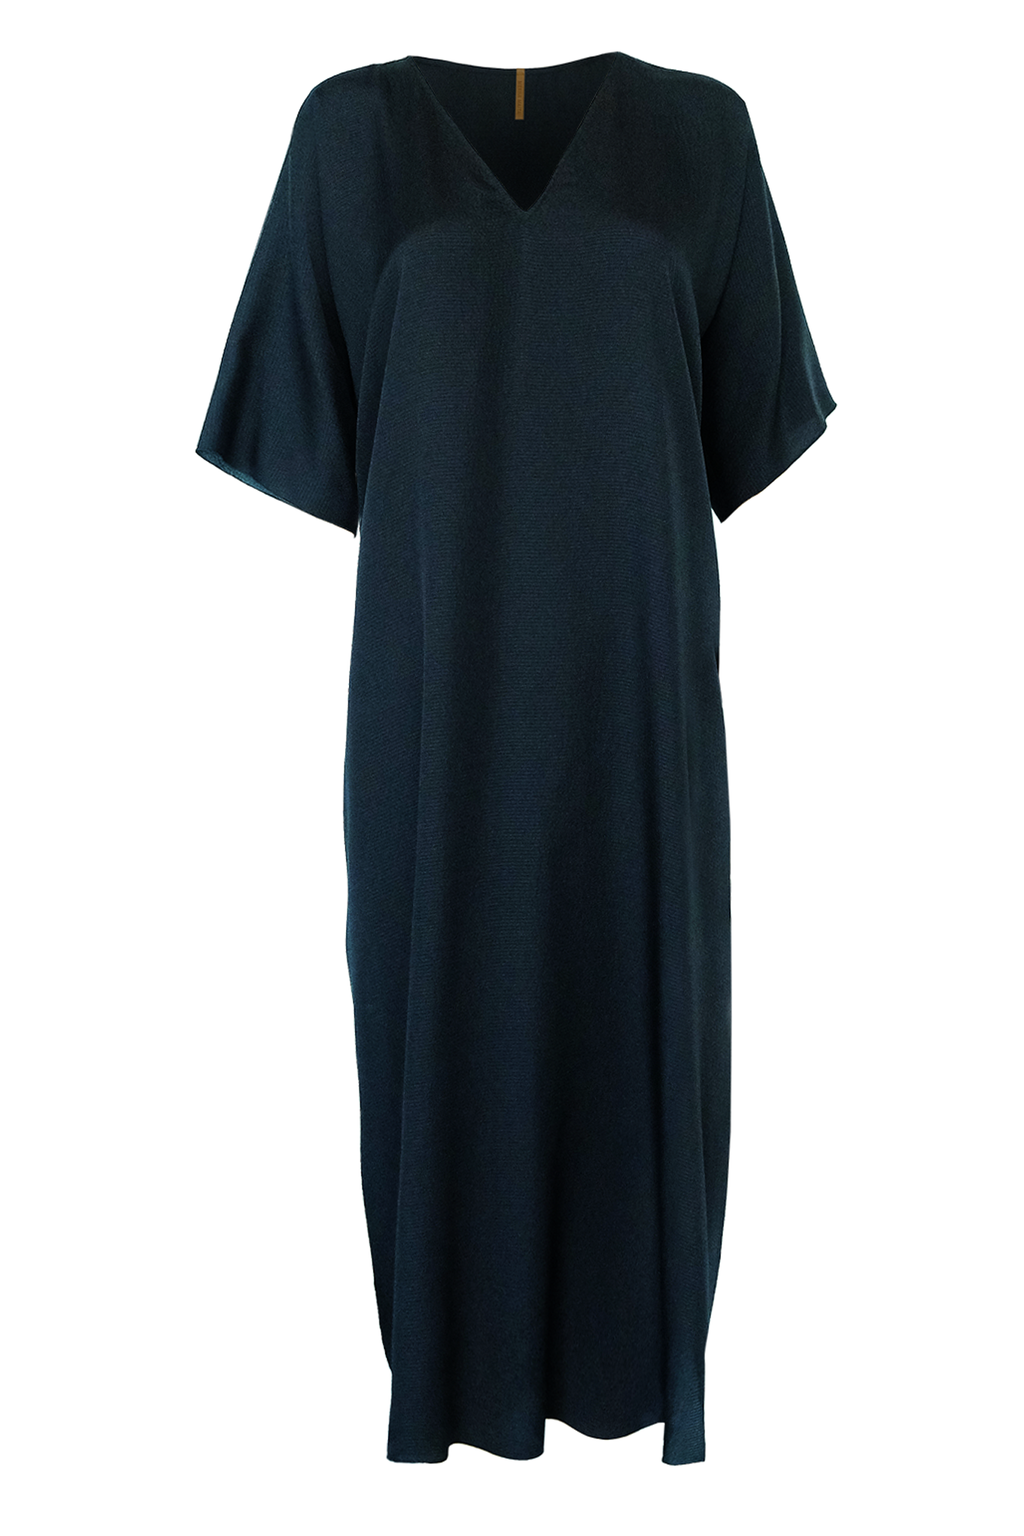 Silk Seersucker Caftan - Black